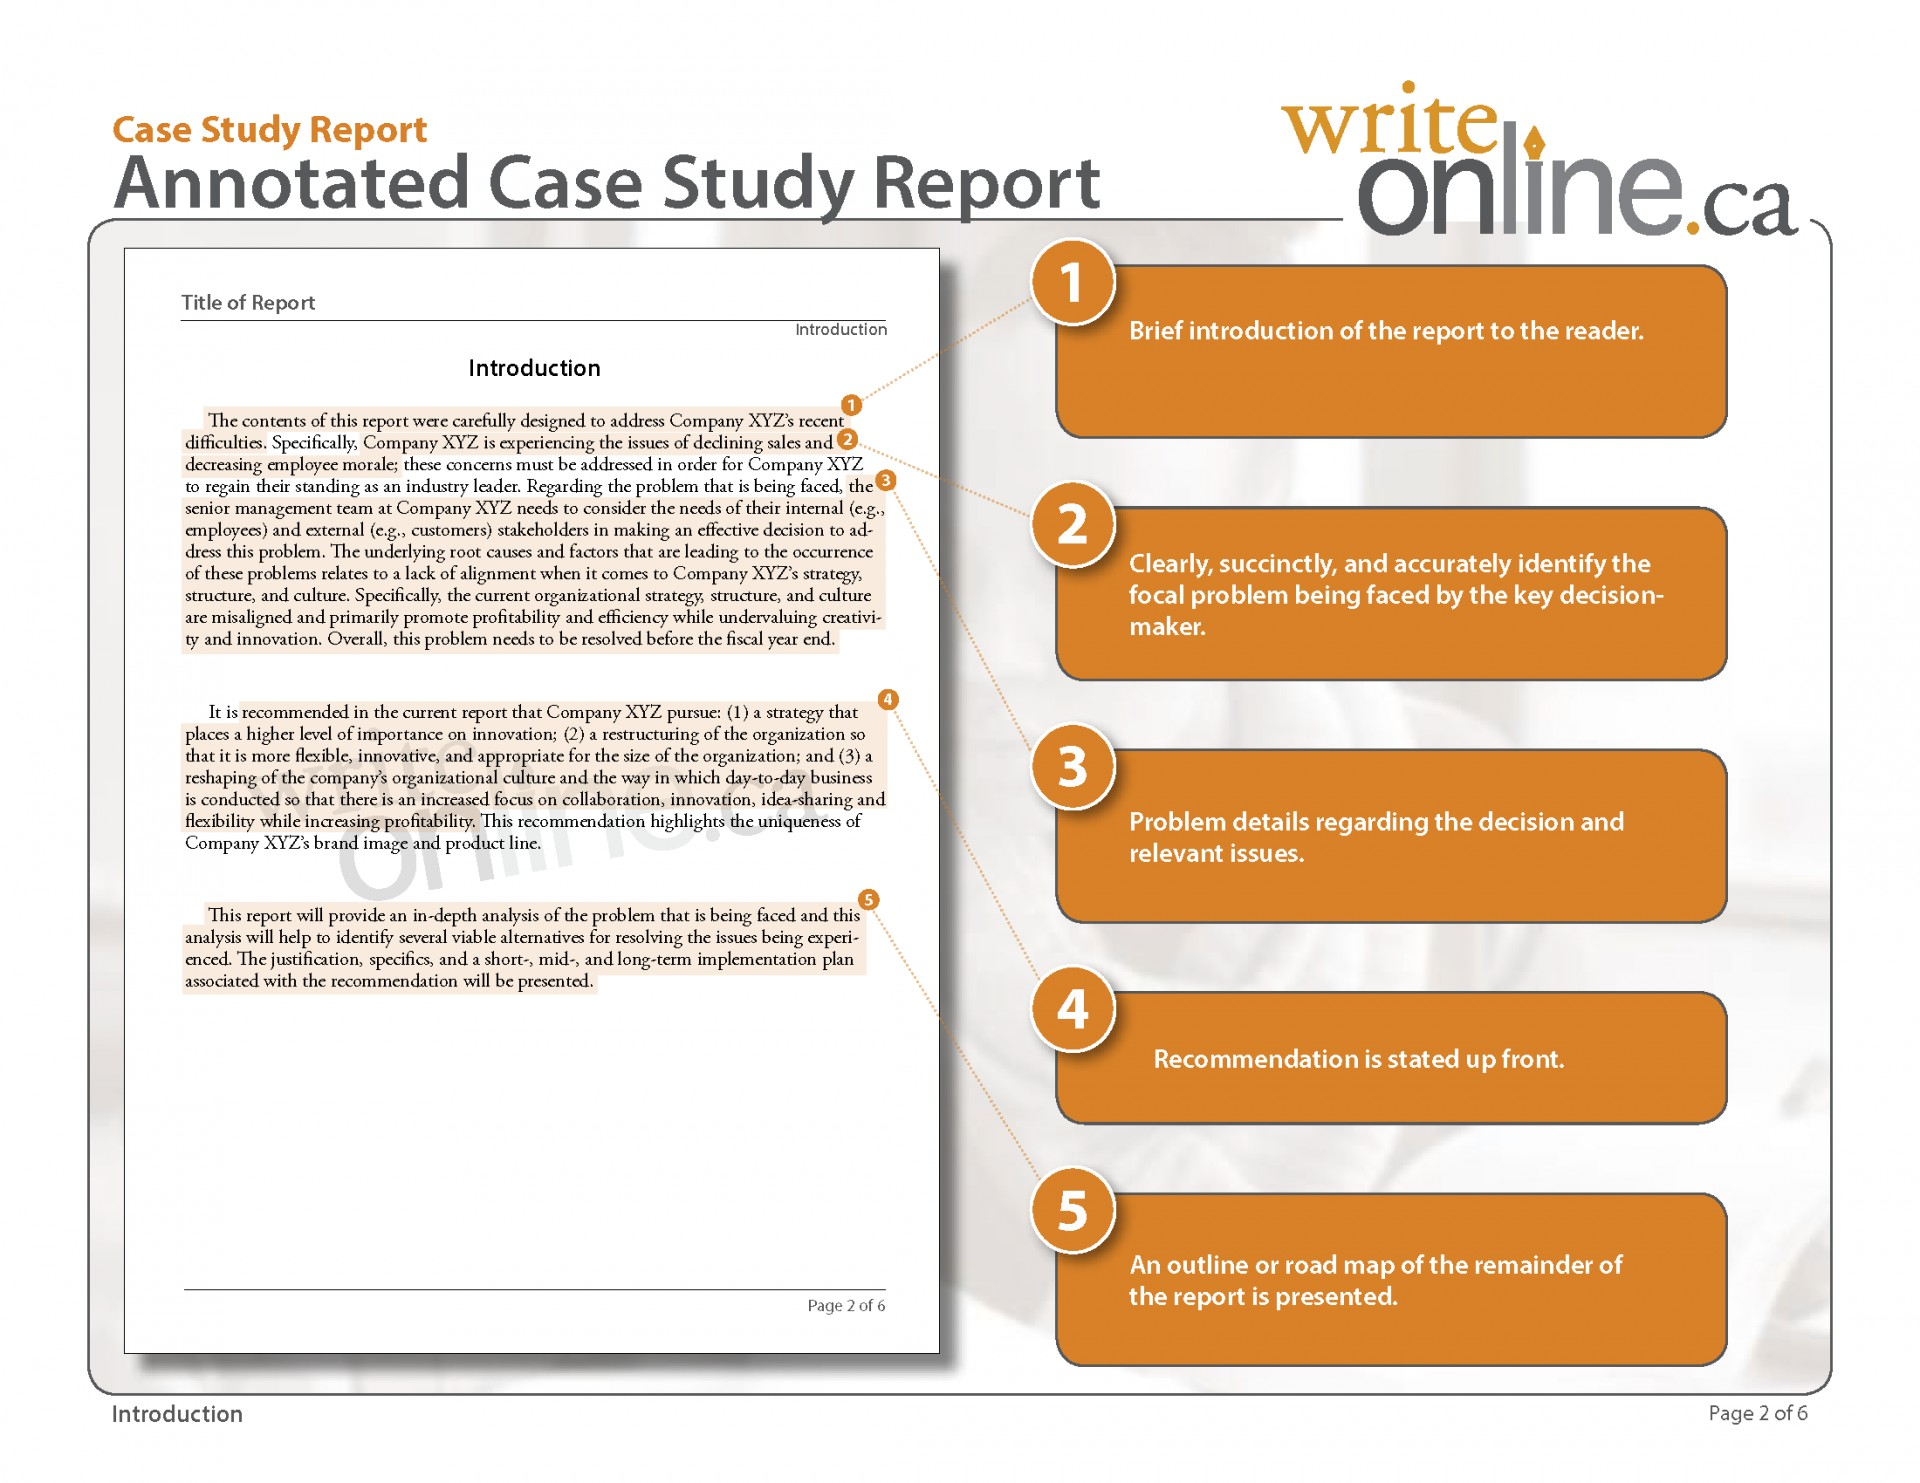 009 Research Paper Casestudy Annotatedfull Page 2 Component Of Archaicawful Pdf Parts Chapter 1 1-5 1920